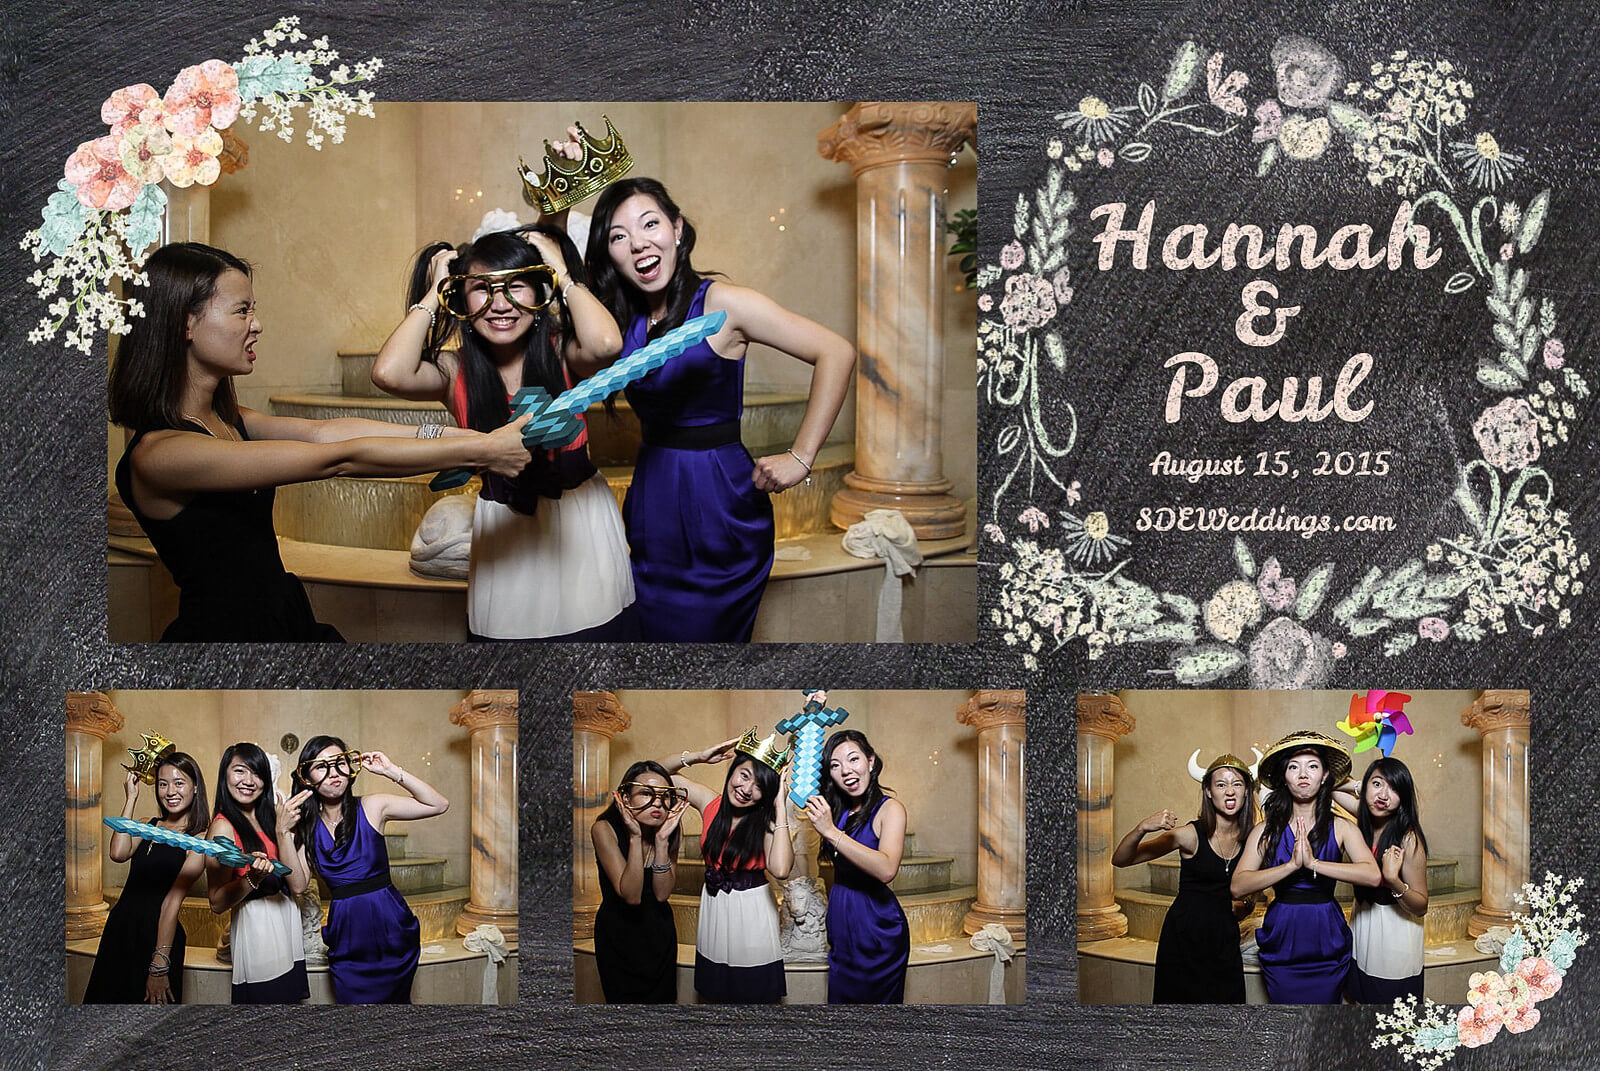 Markham Premiere Banquet Wedding Photobooth Rental 12